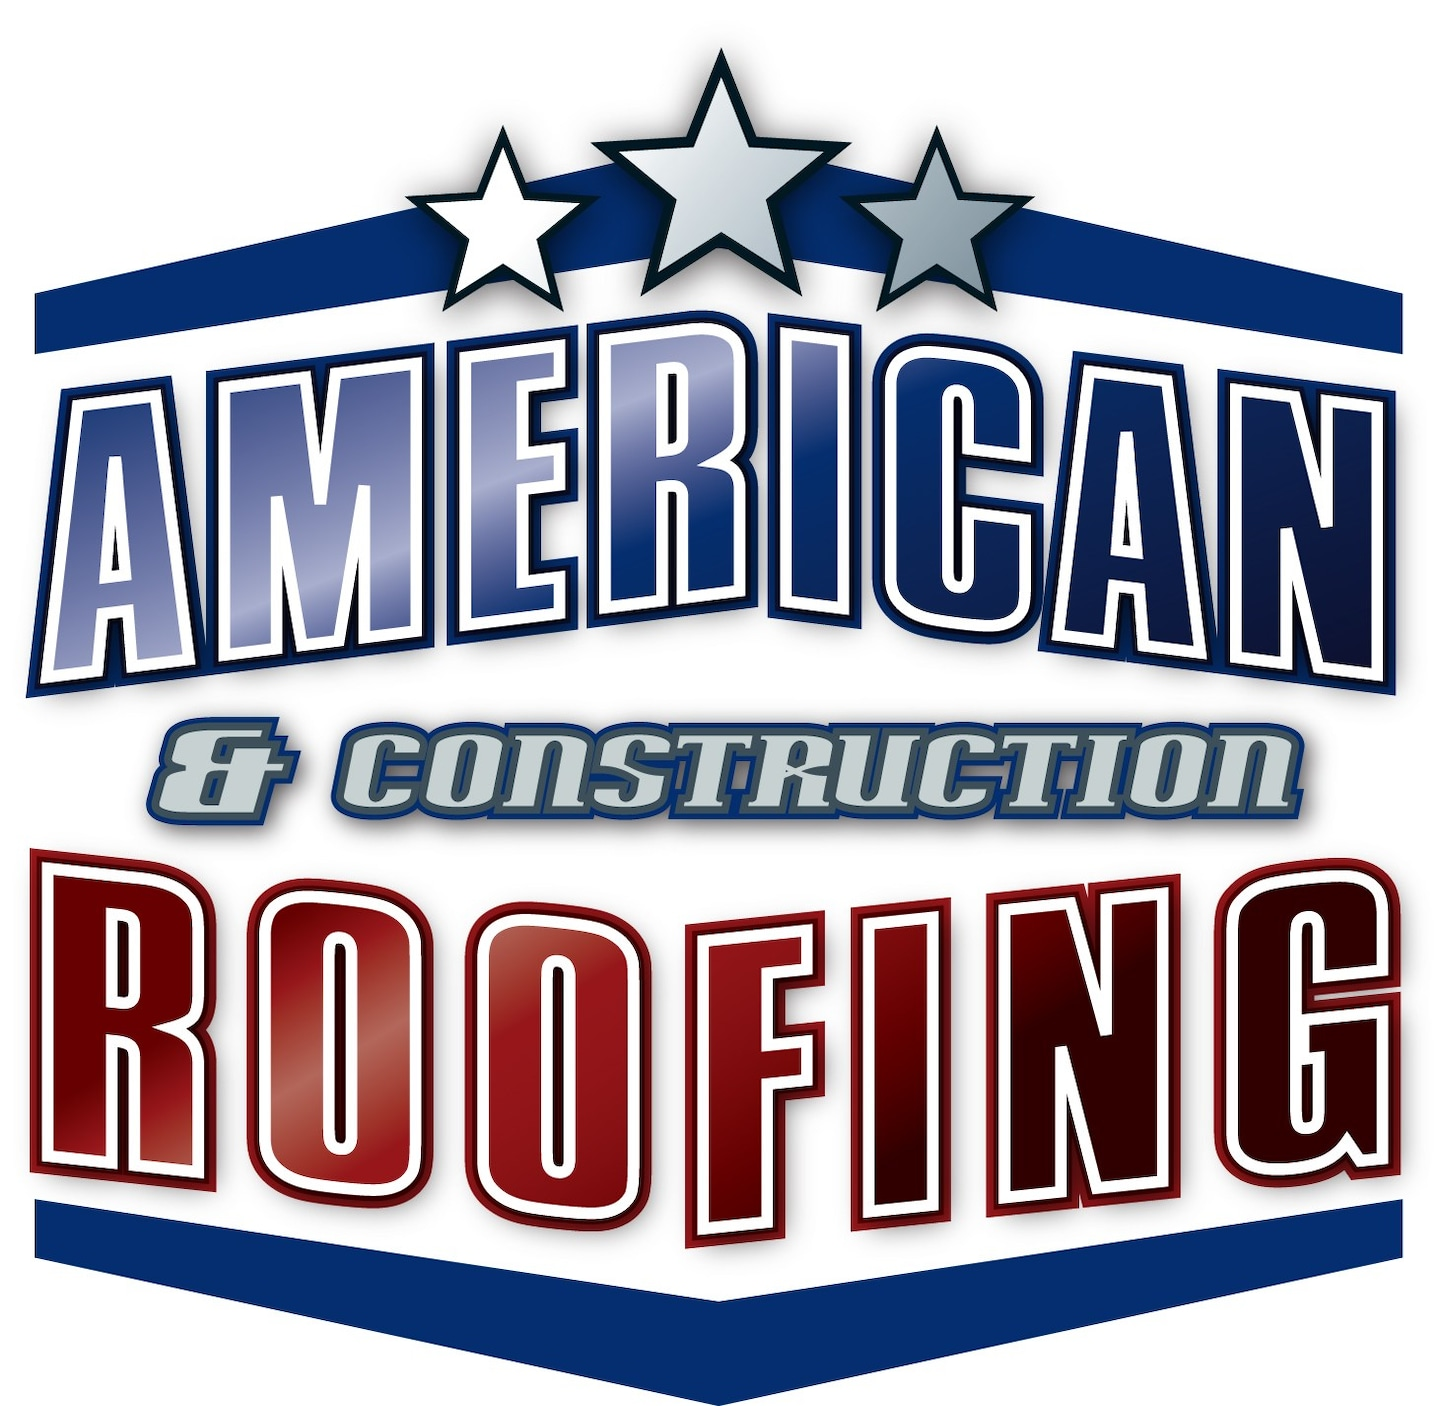 American Roofing & Construction